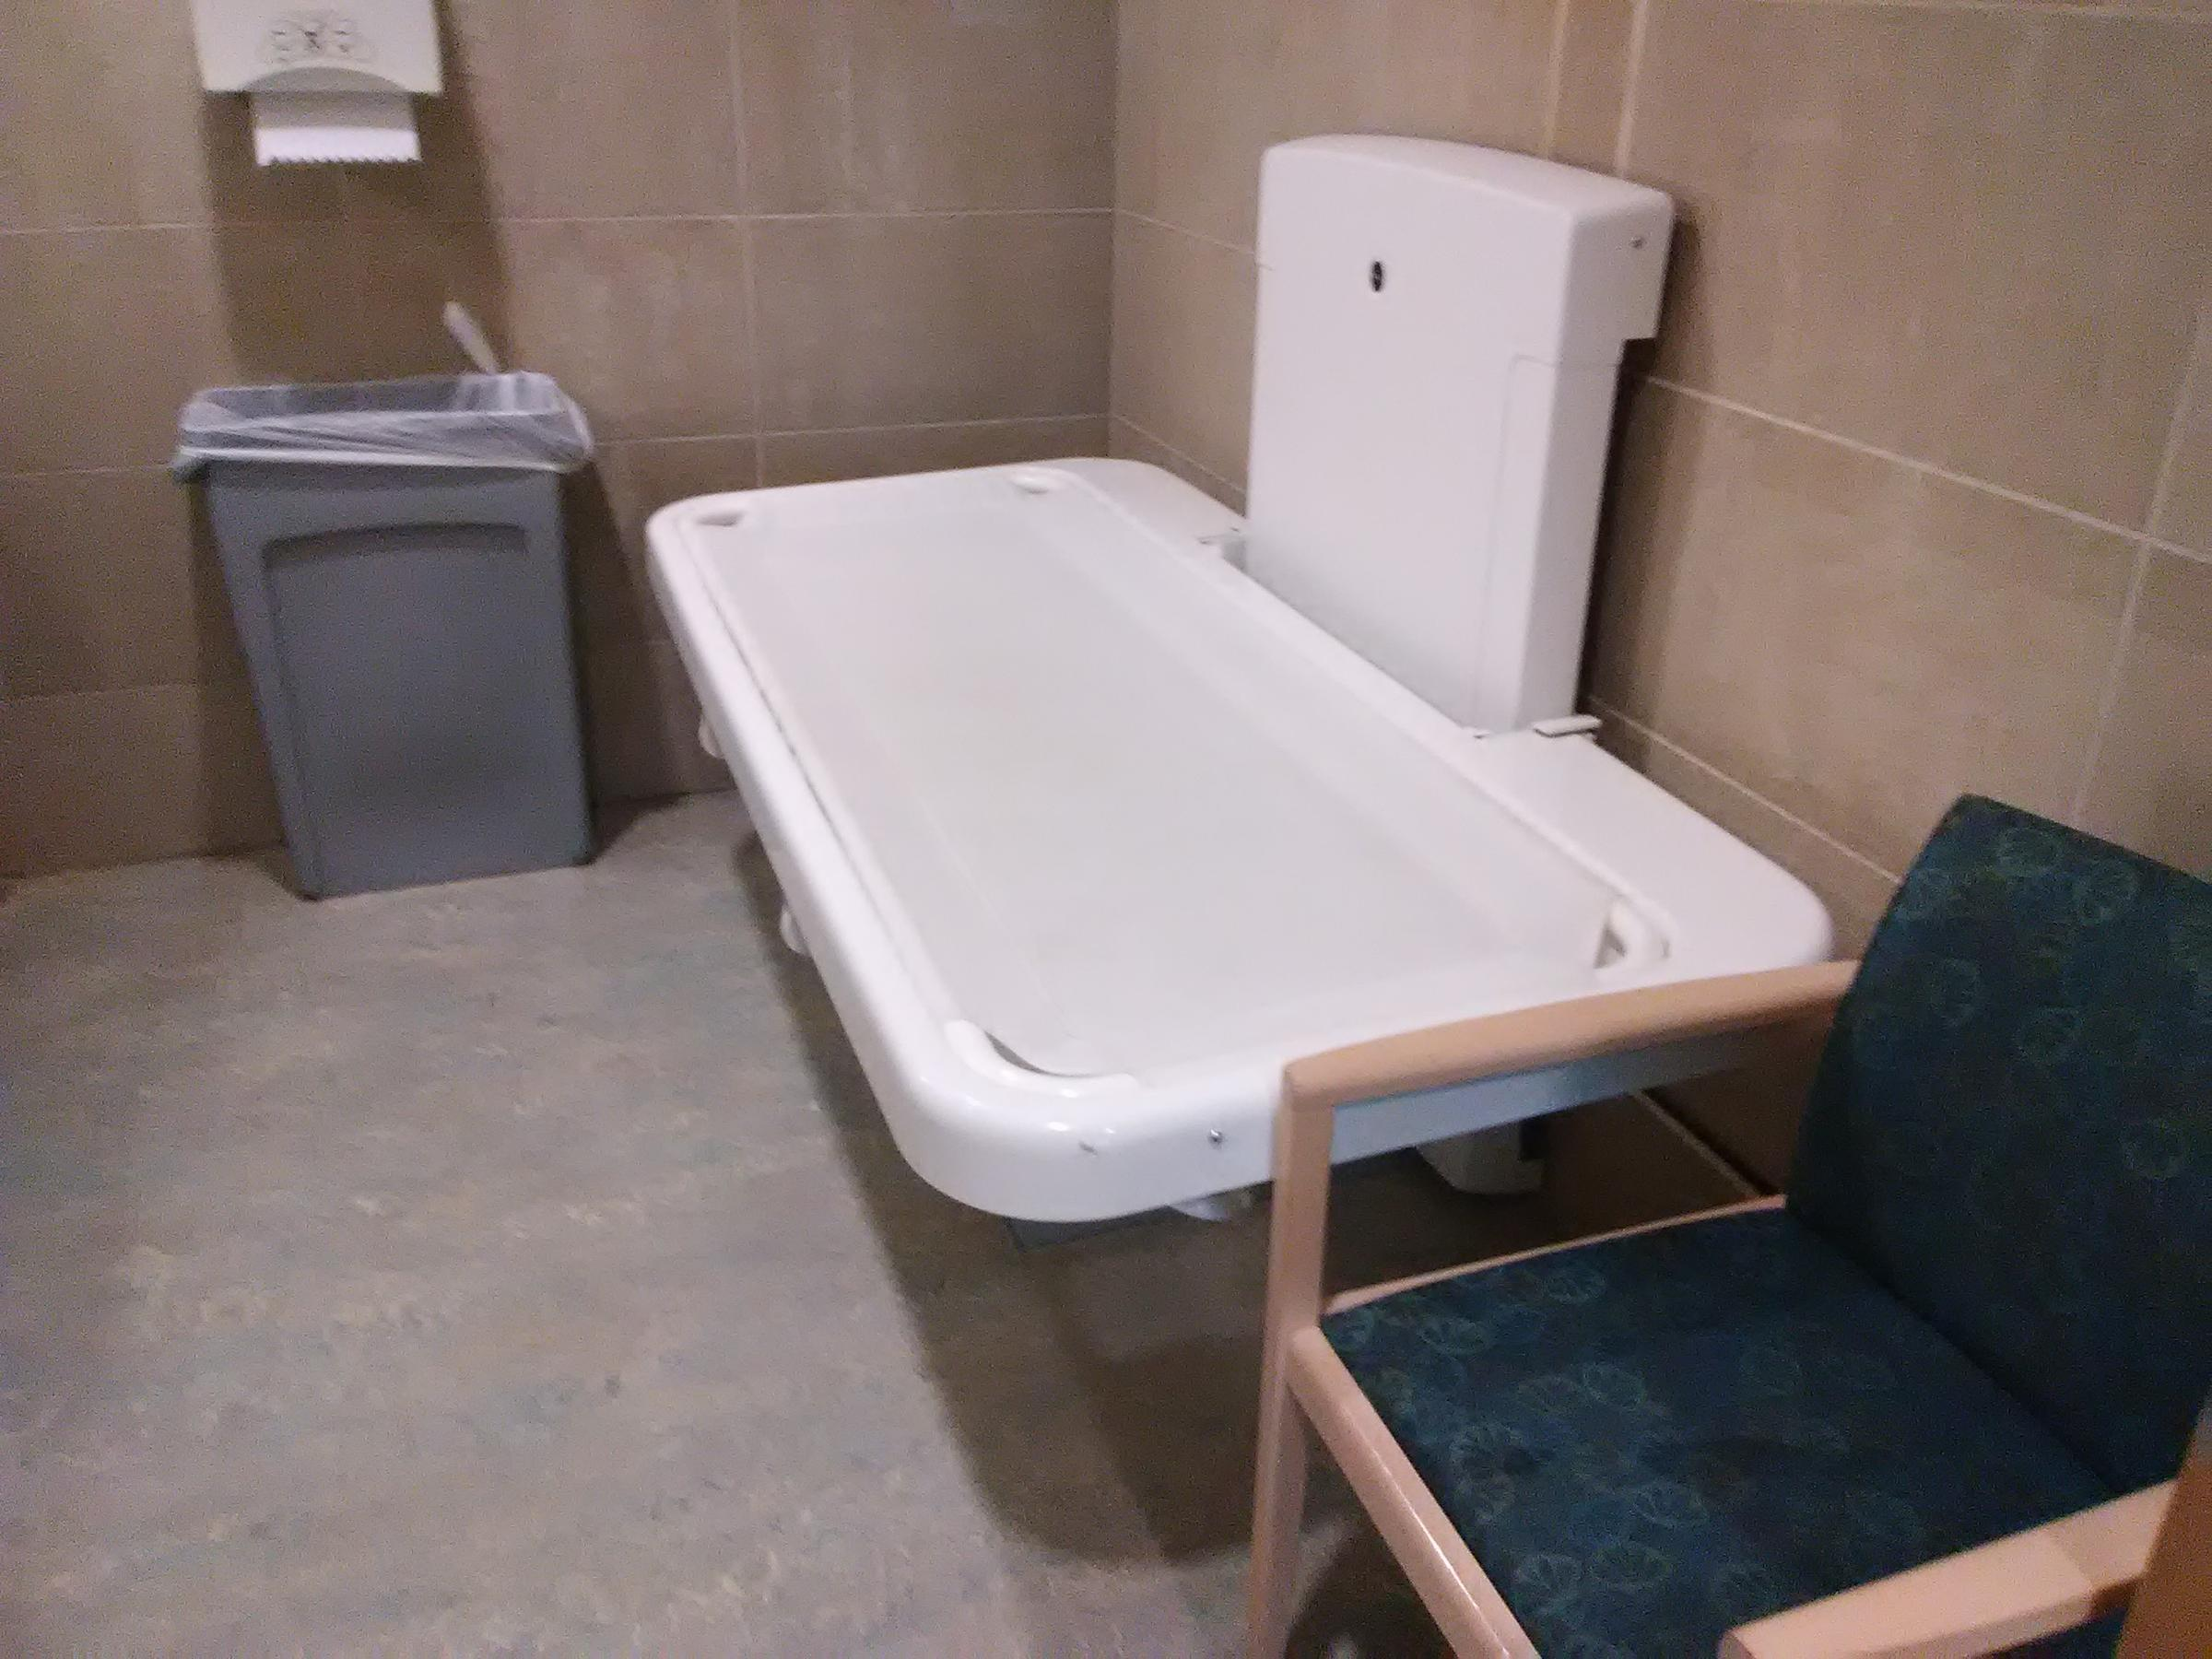 Upmc Children S Hospital Of Pittsburgh Has An Changing Table Perhaps The Only Public Restroom With Amenity In City